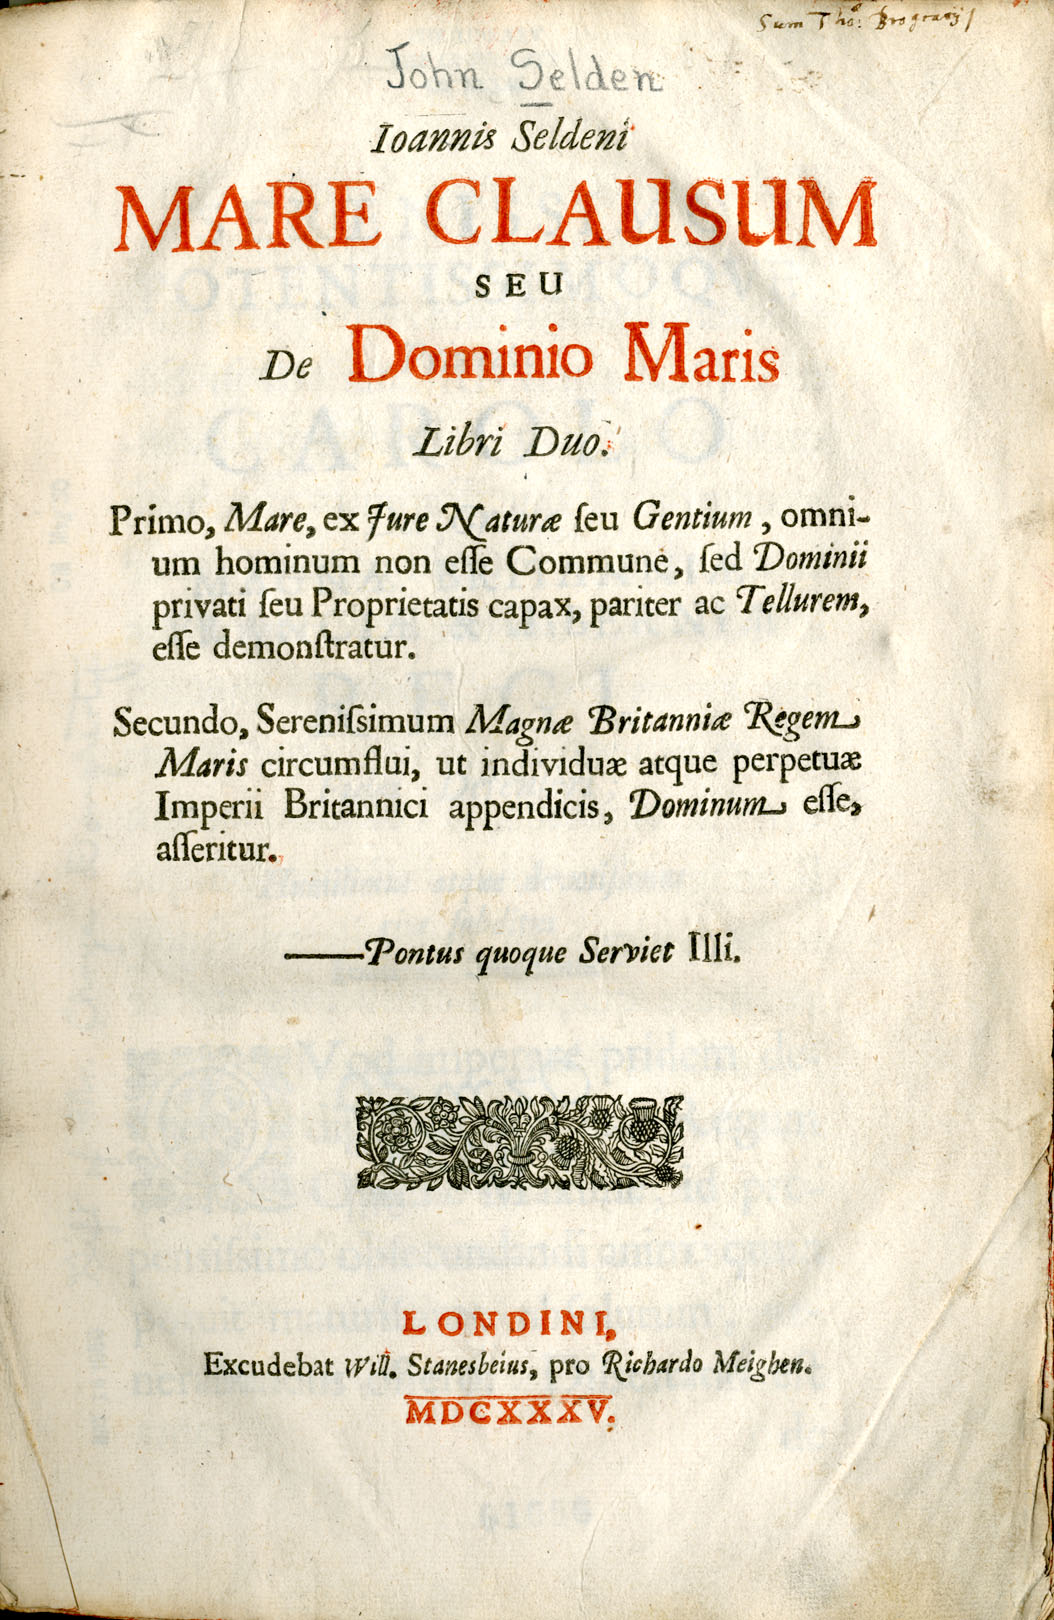 John Selden. Mare clausum: seu de dominio maris, libri duo. London: excudebat Will. Stanesbeius, pro Richardo Meighen, 1635.